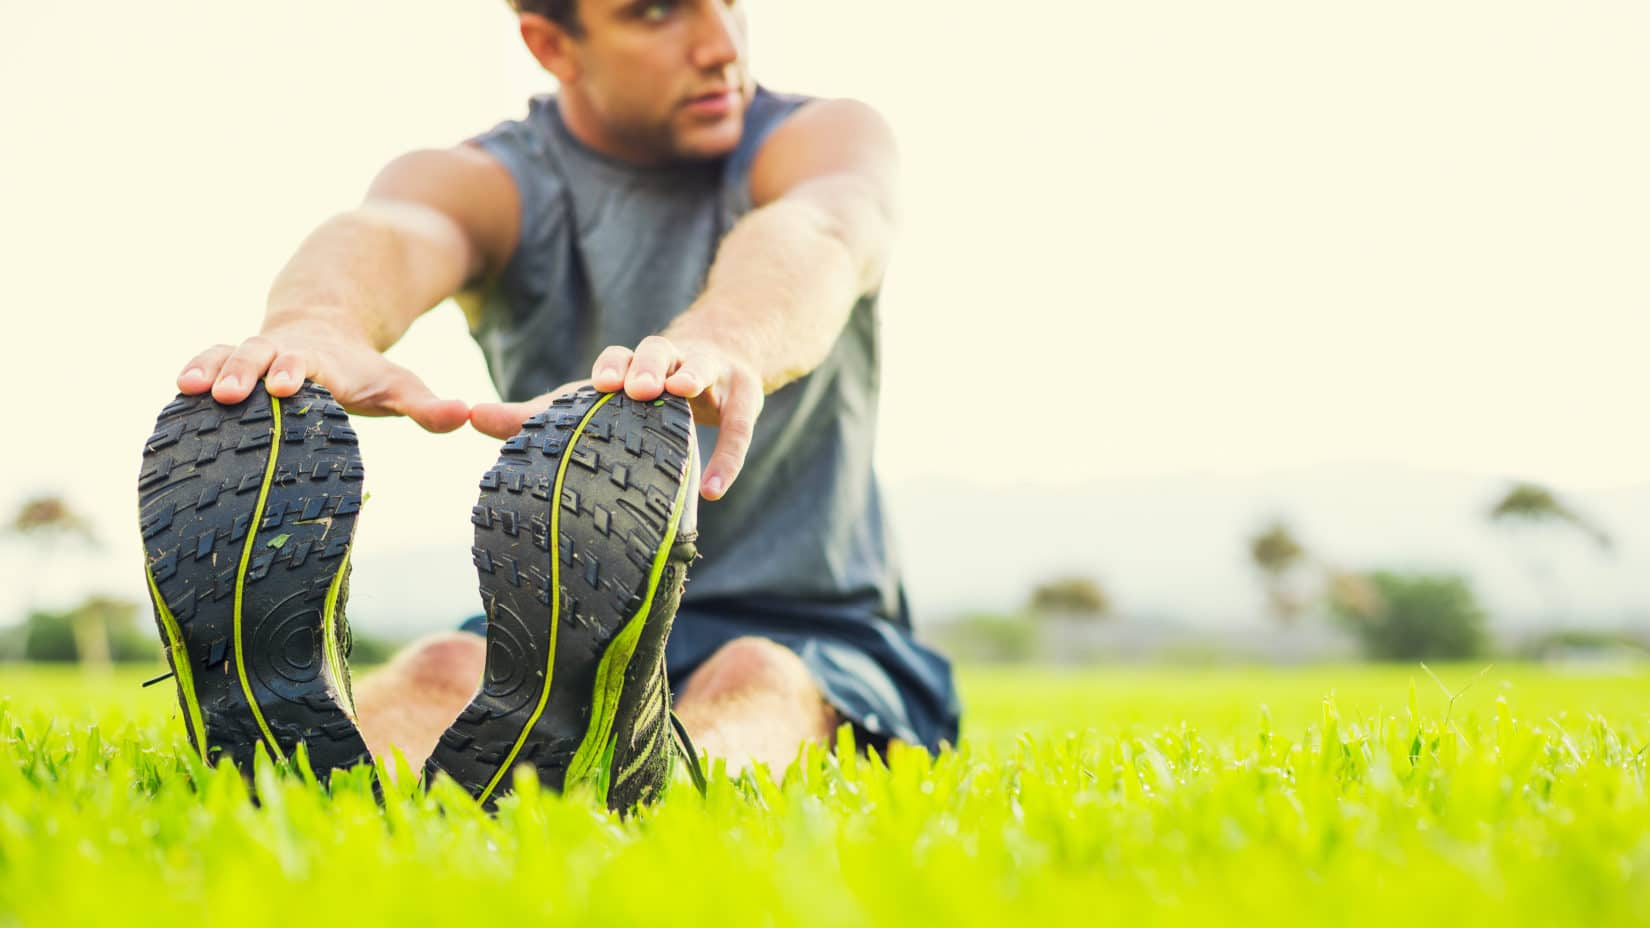 Man in running gear stretching on grass